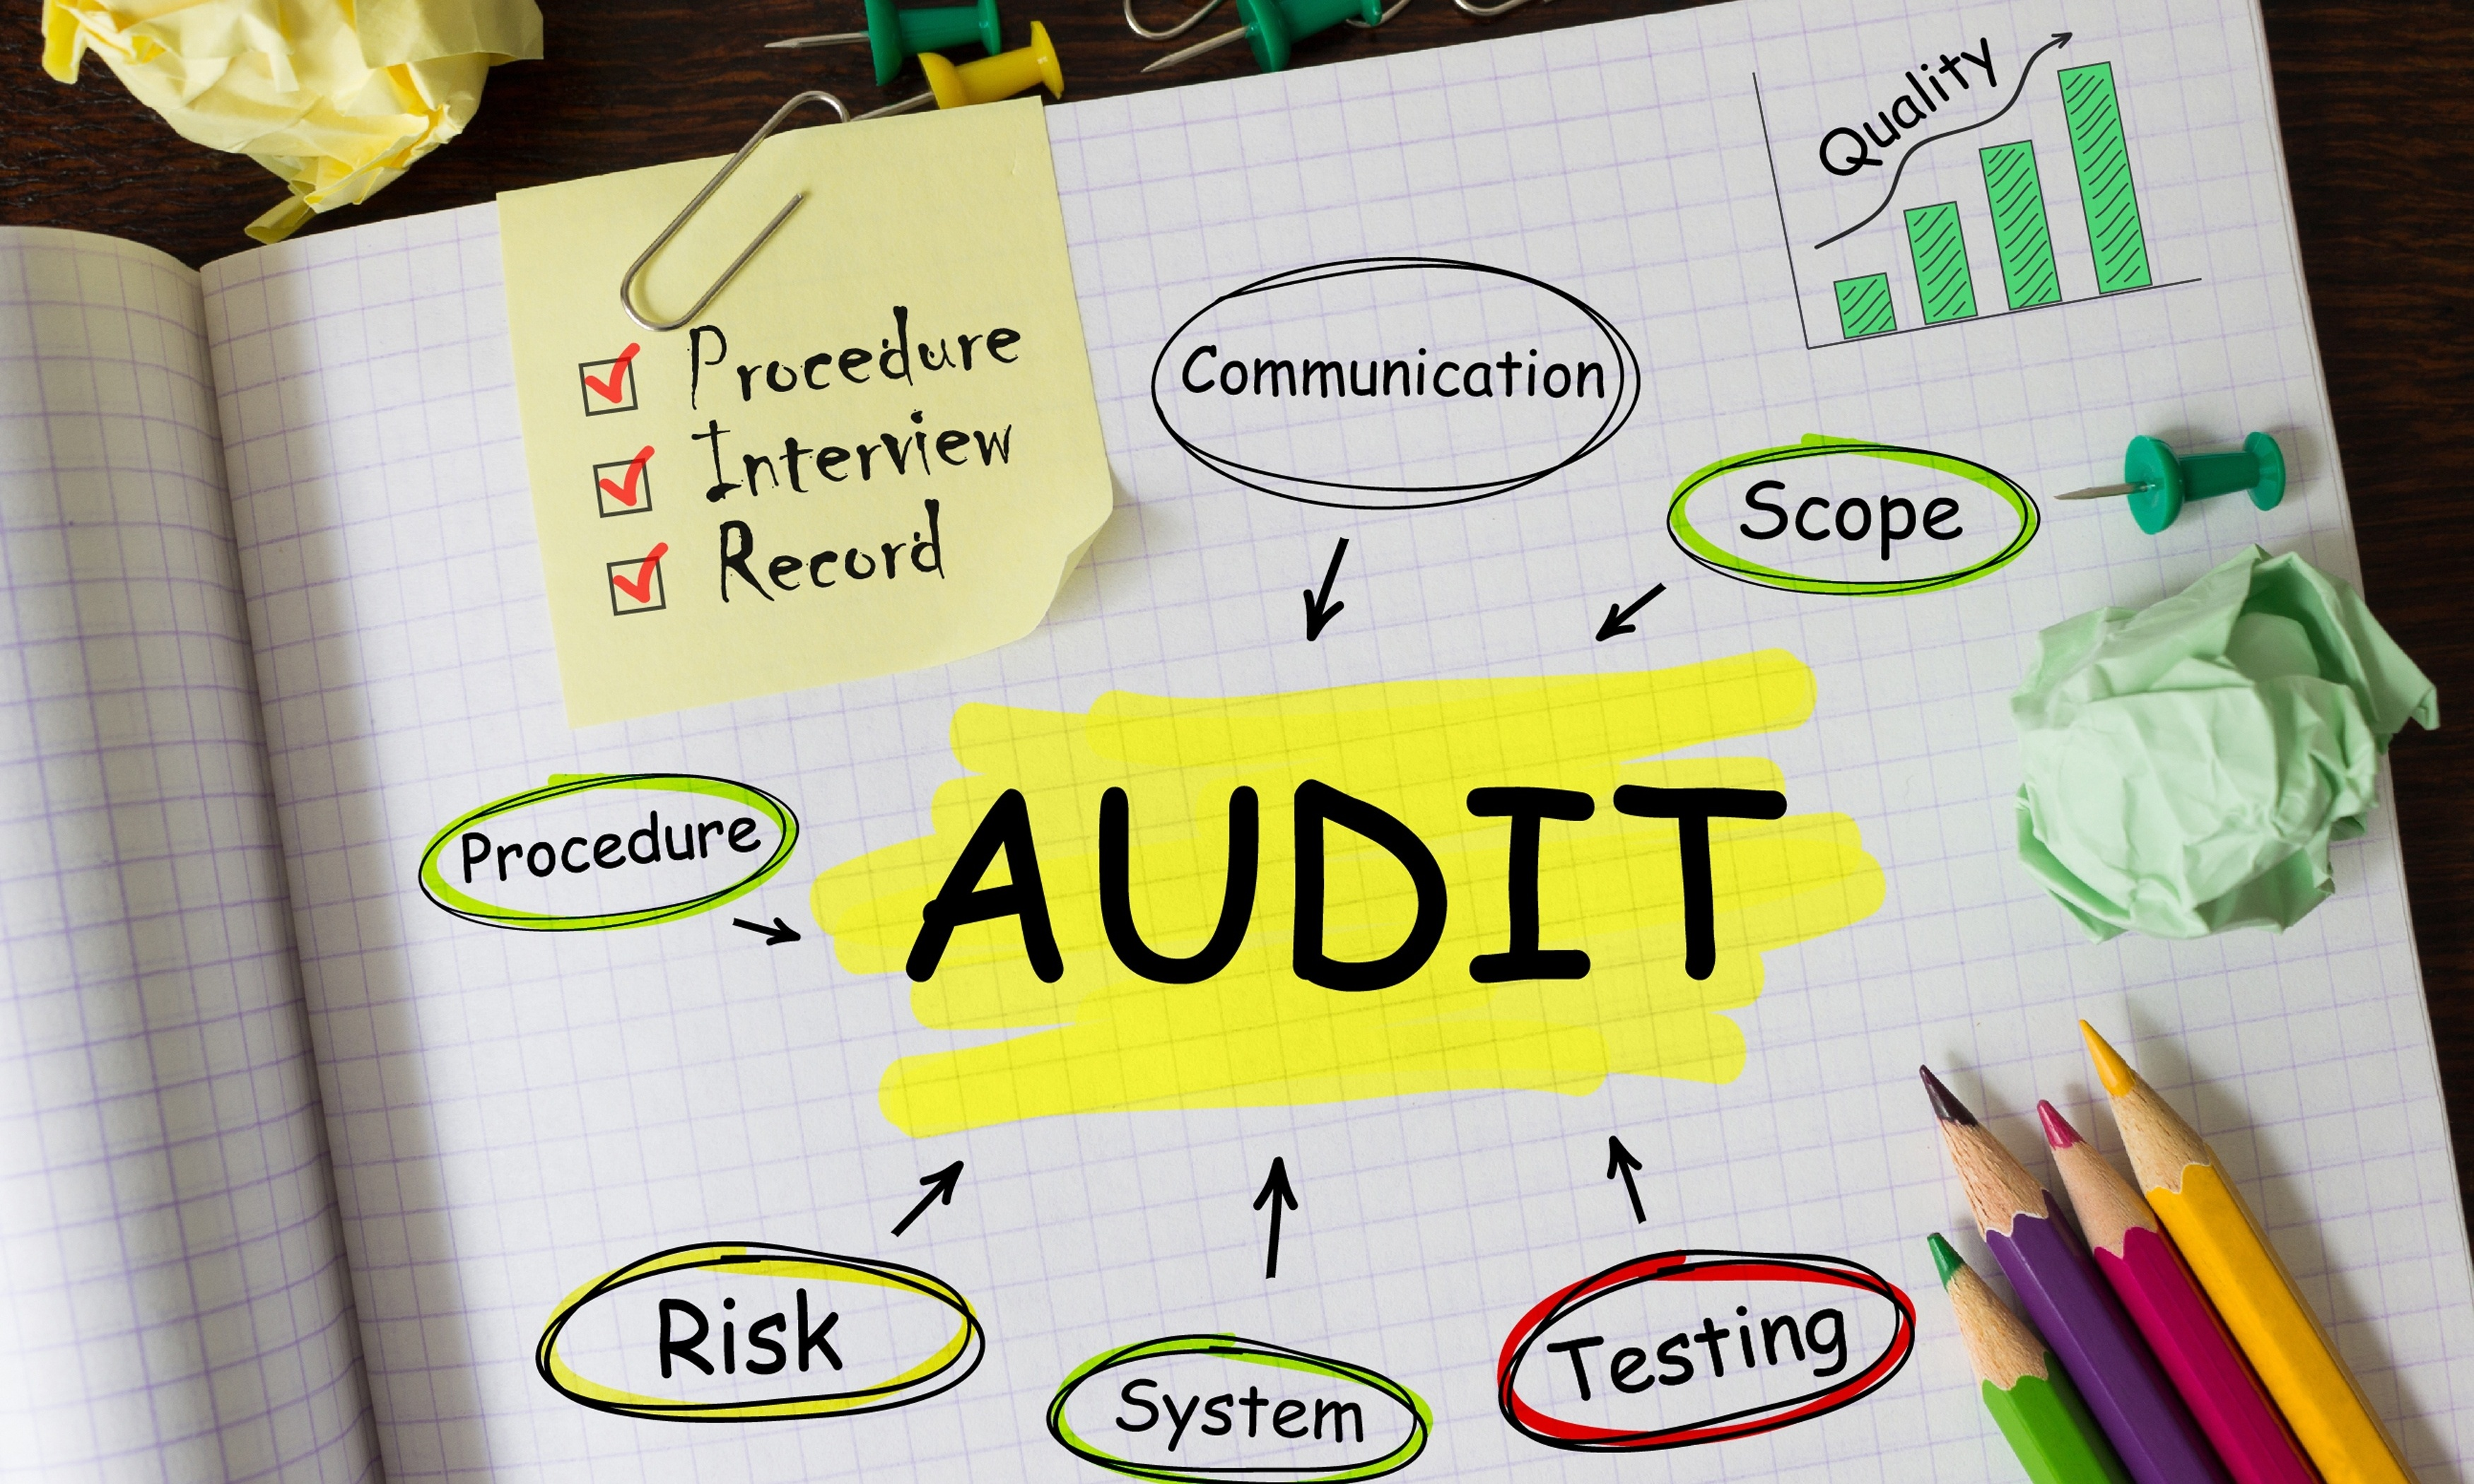 New Approach to Audit Process-177508-edited.jpg